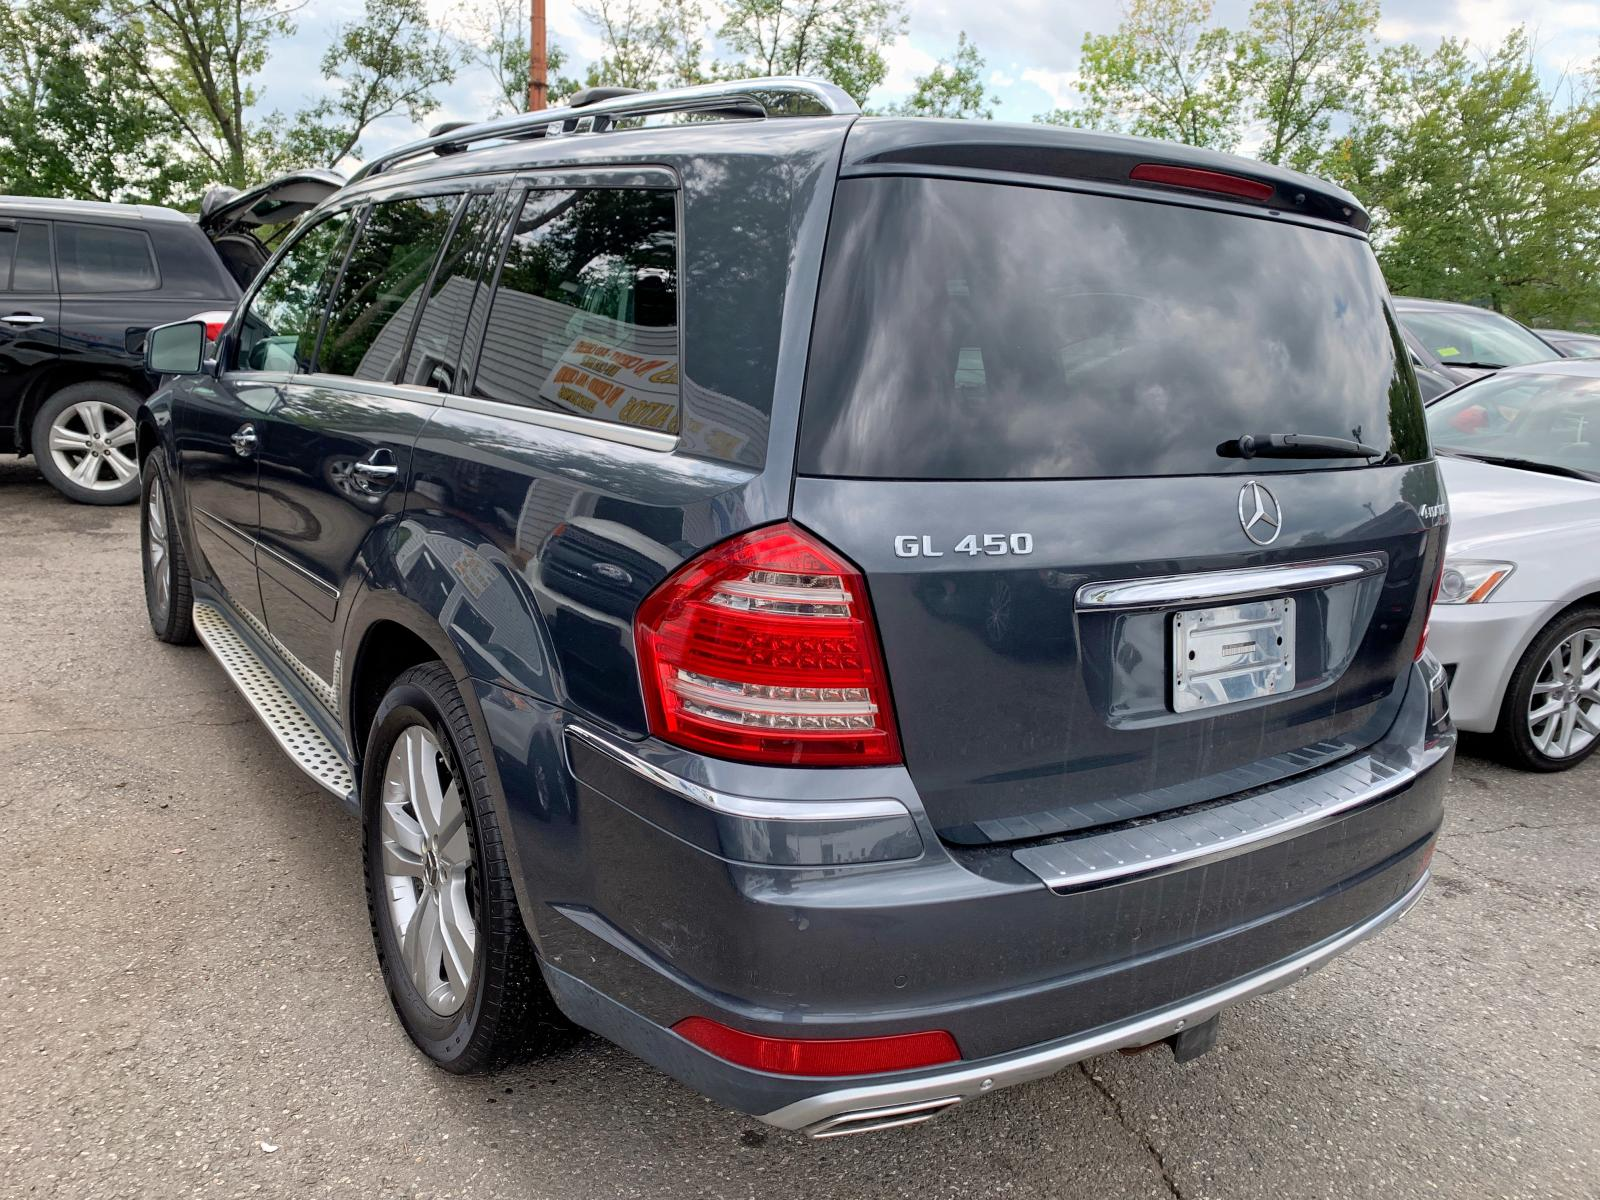 4JGBF7BE0BA624687 - 2011 Mercedes-Benz Gl 450 4Ma 4.6L rear view